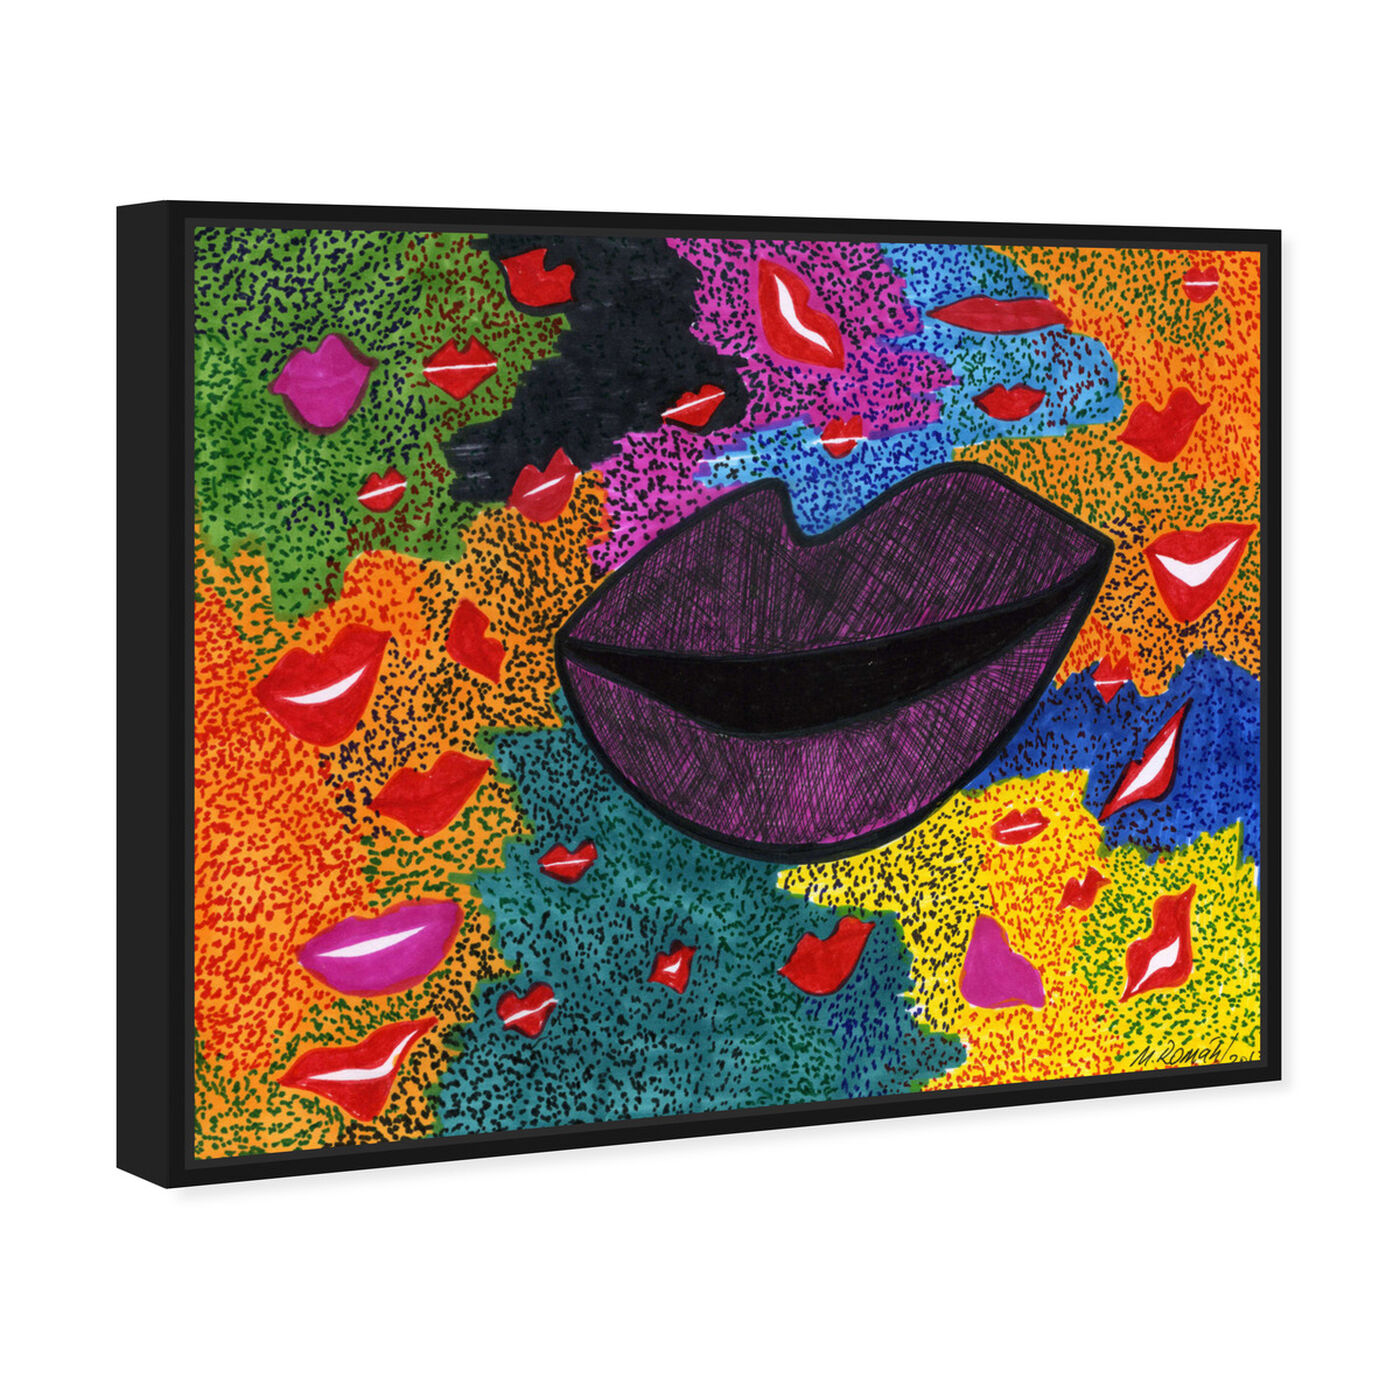 Angled view of Laughter featuring fashion and glam and lips art.